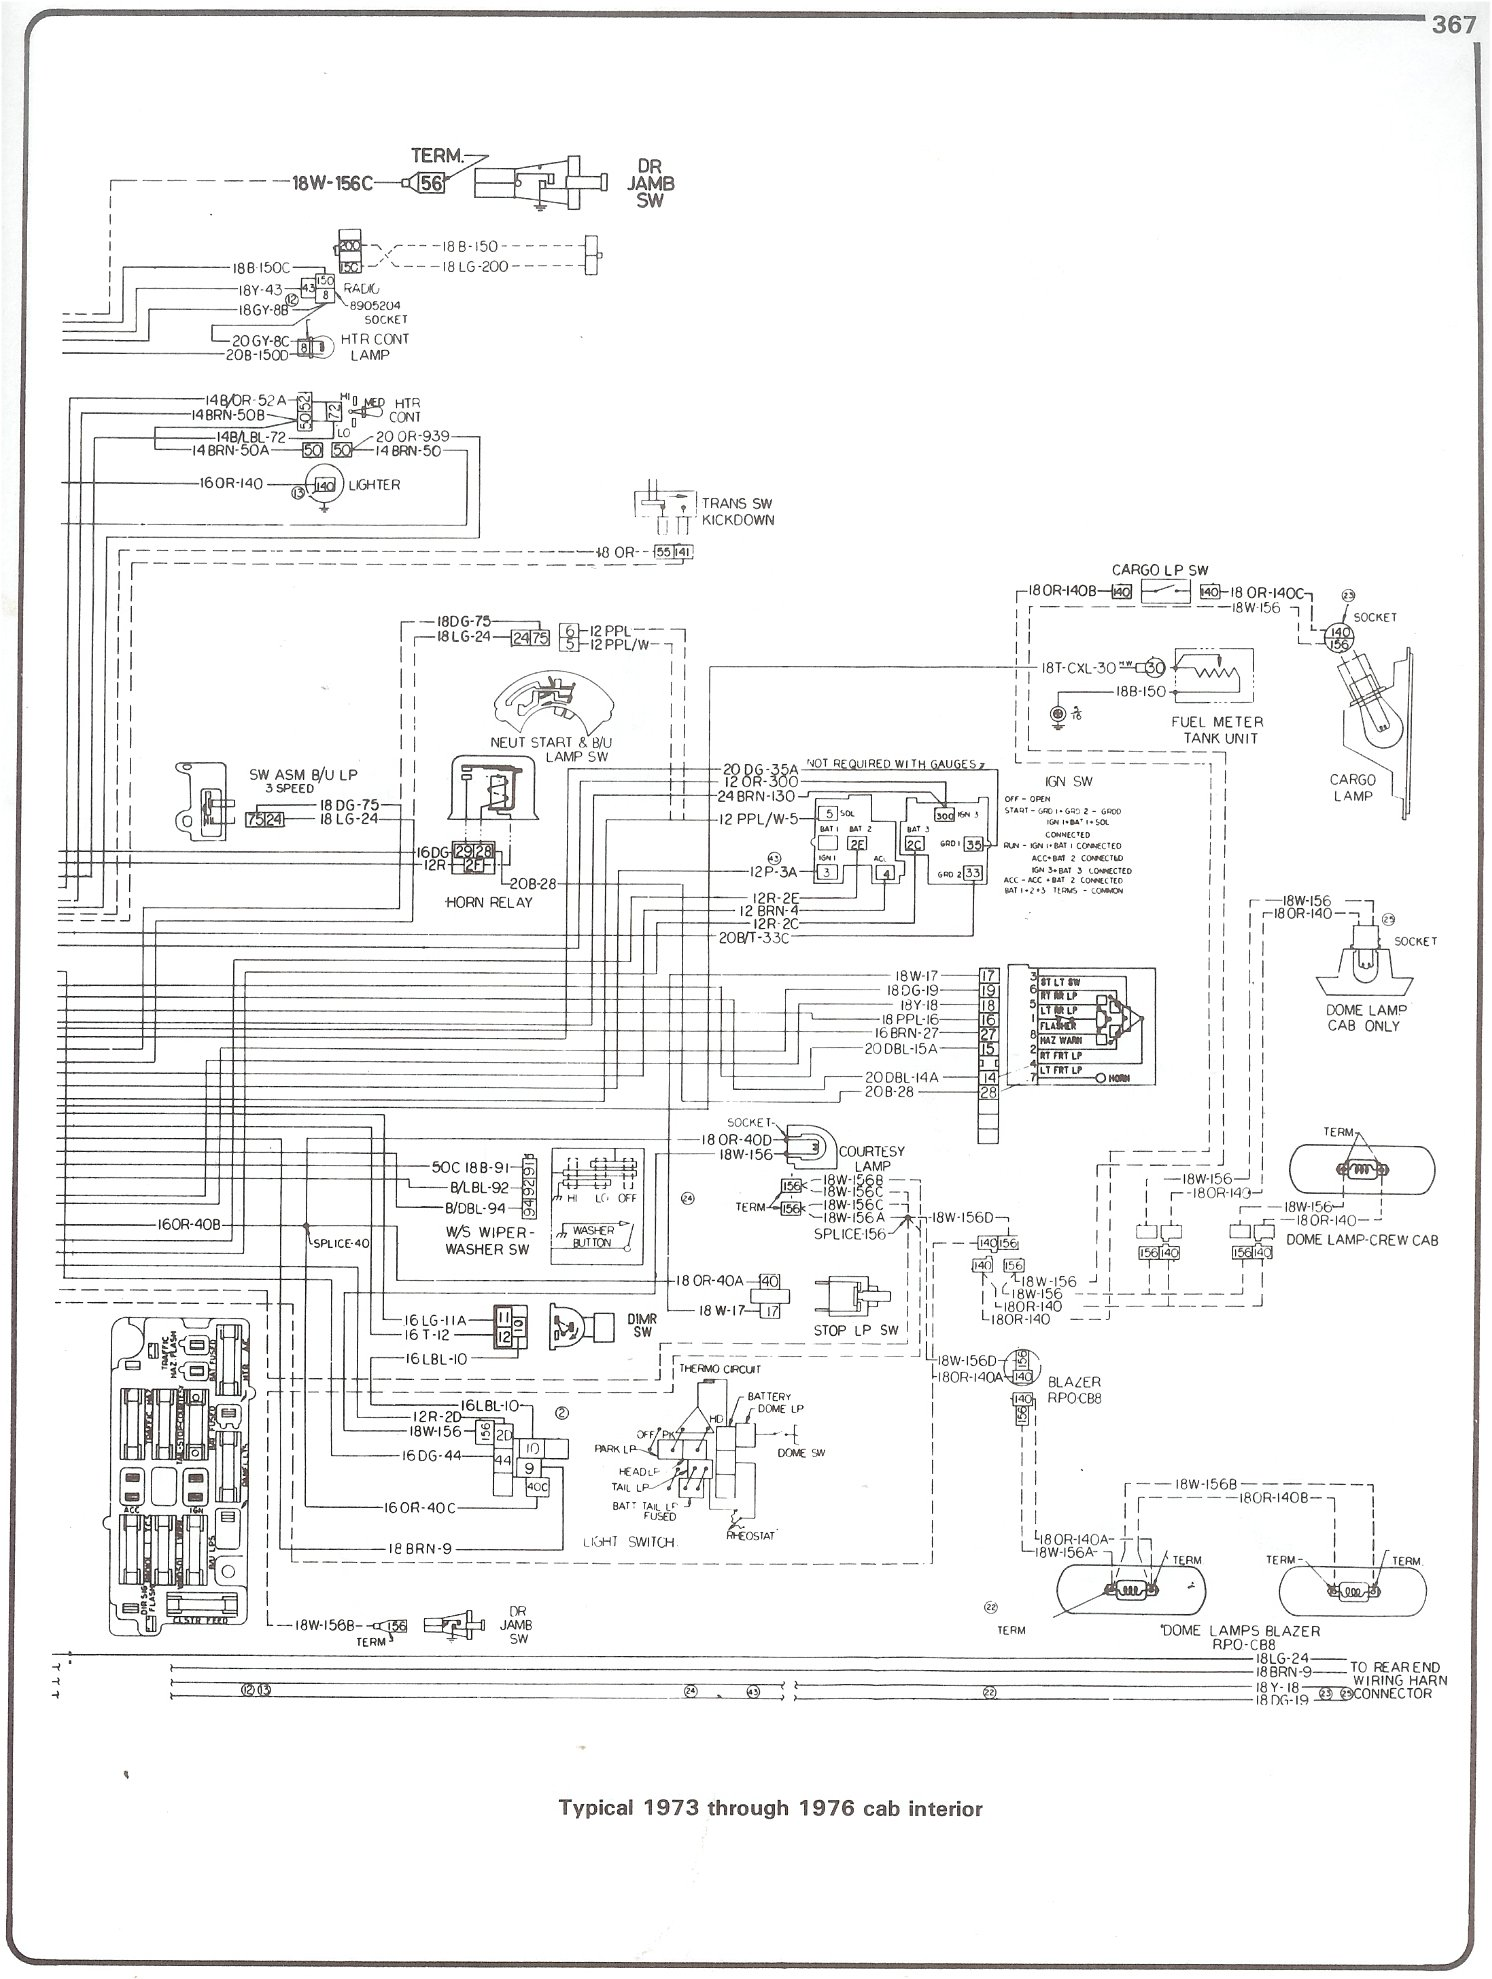 73 76_cab_inter complete 73 87 wiring diagrams 2008 Chevy Silverado Wiring Diagram at bayanpartner.co